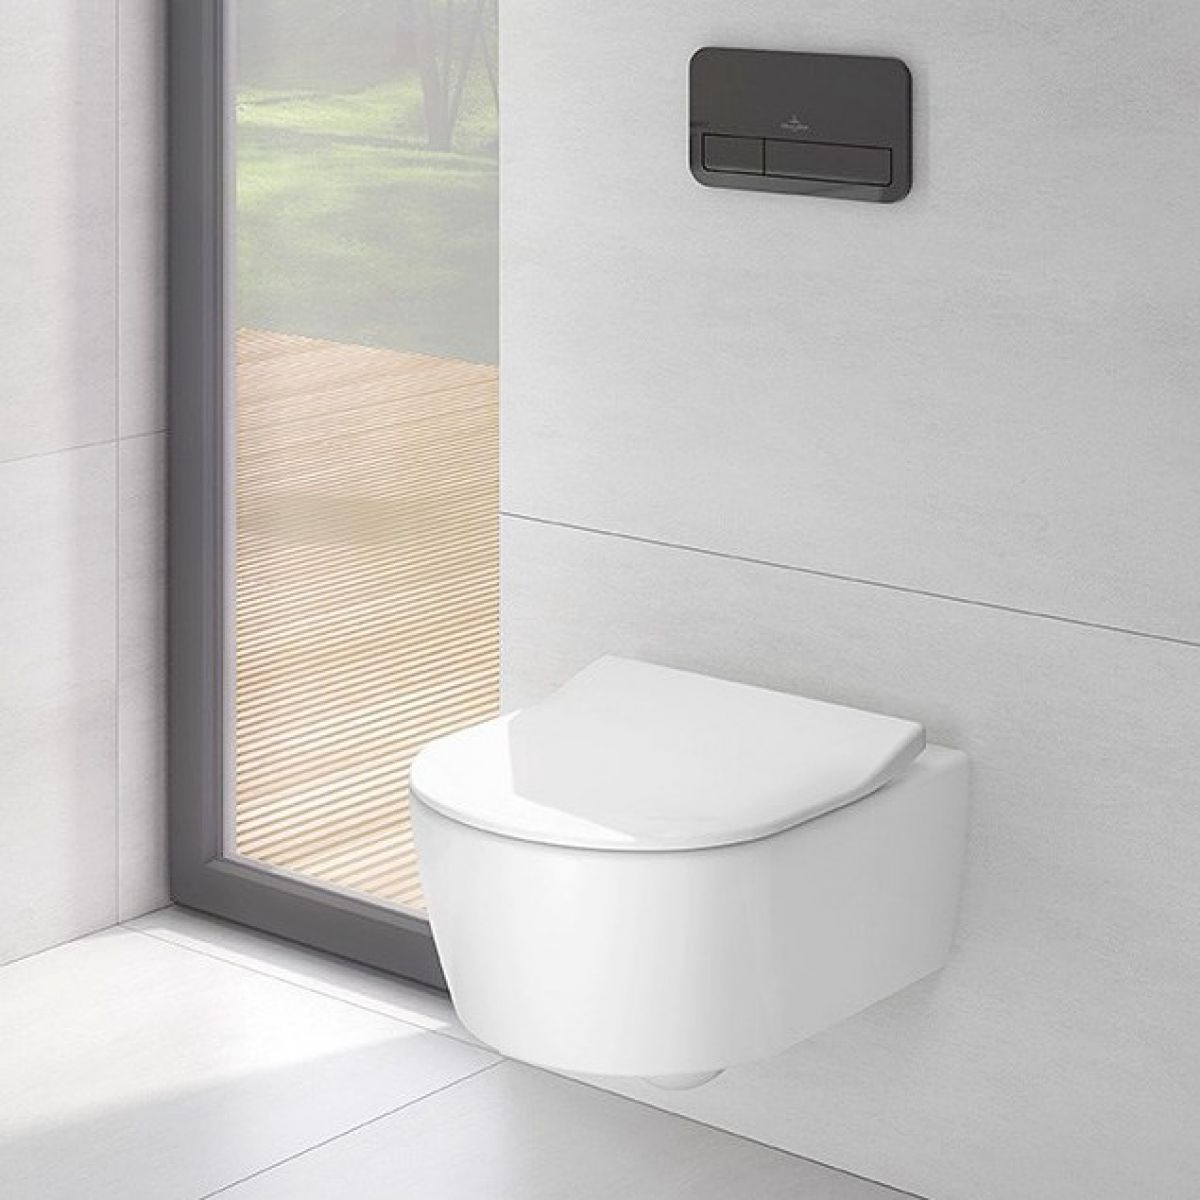 villeroy and boch avento directflush wall hung toilet uk. Black Bedroom Furniture Sets. Home Design Ideas